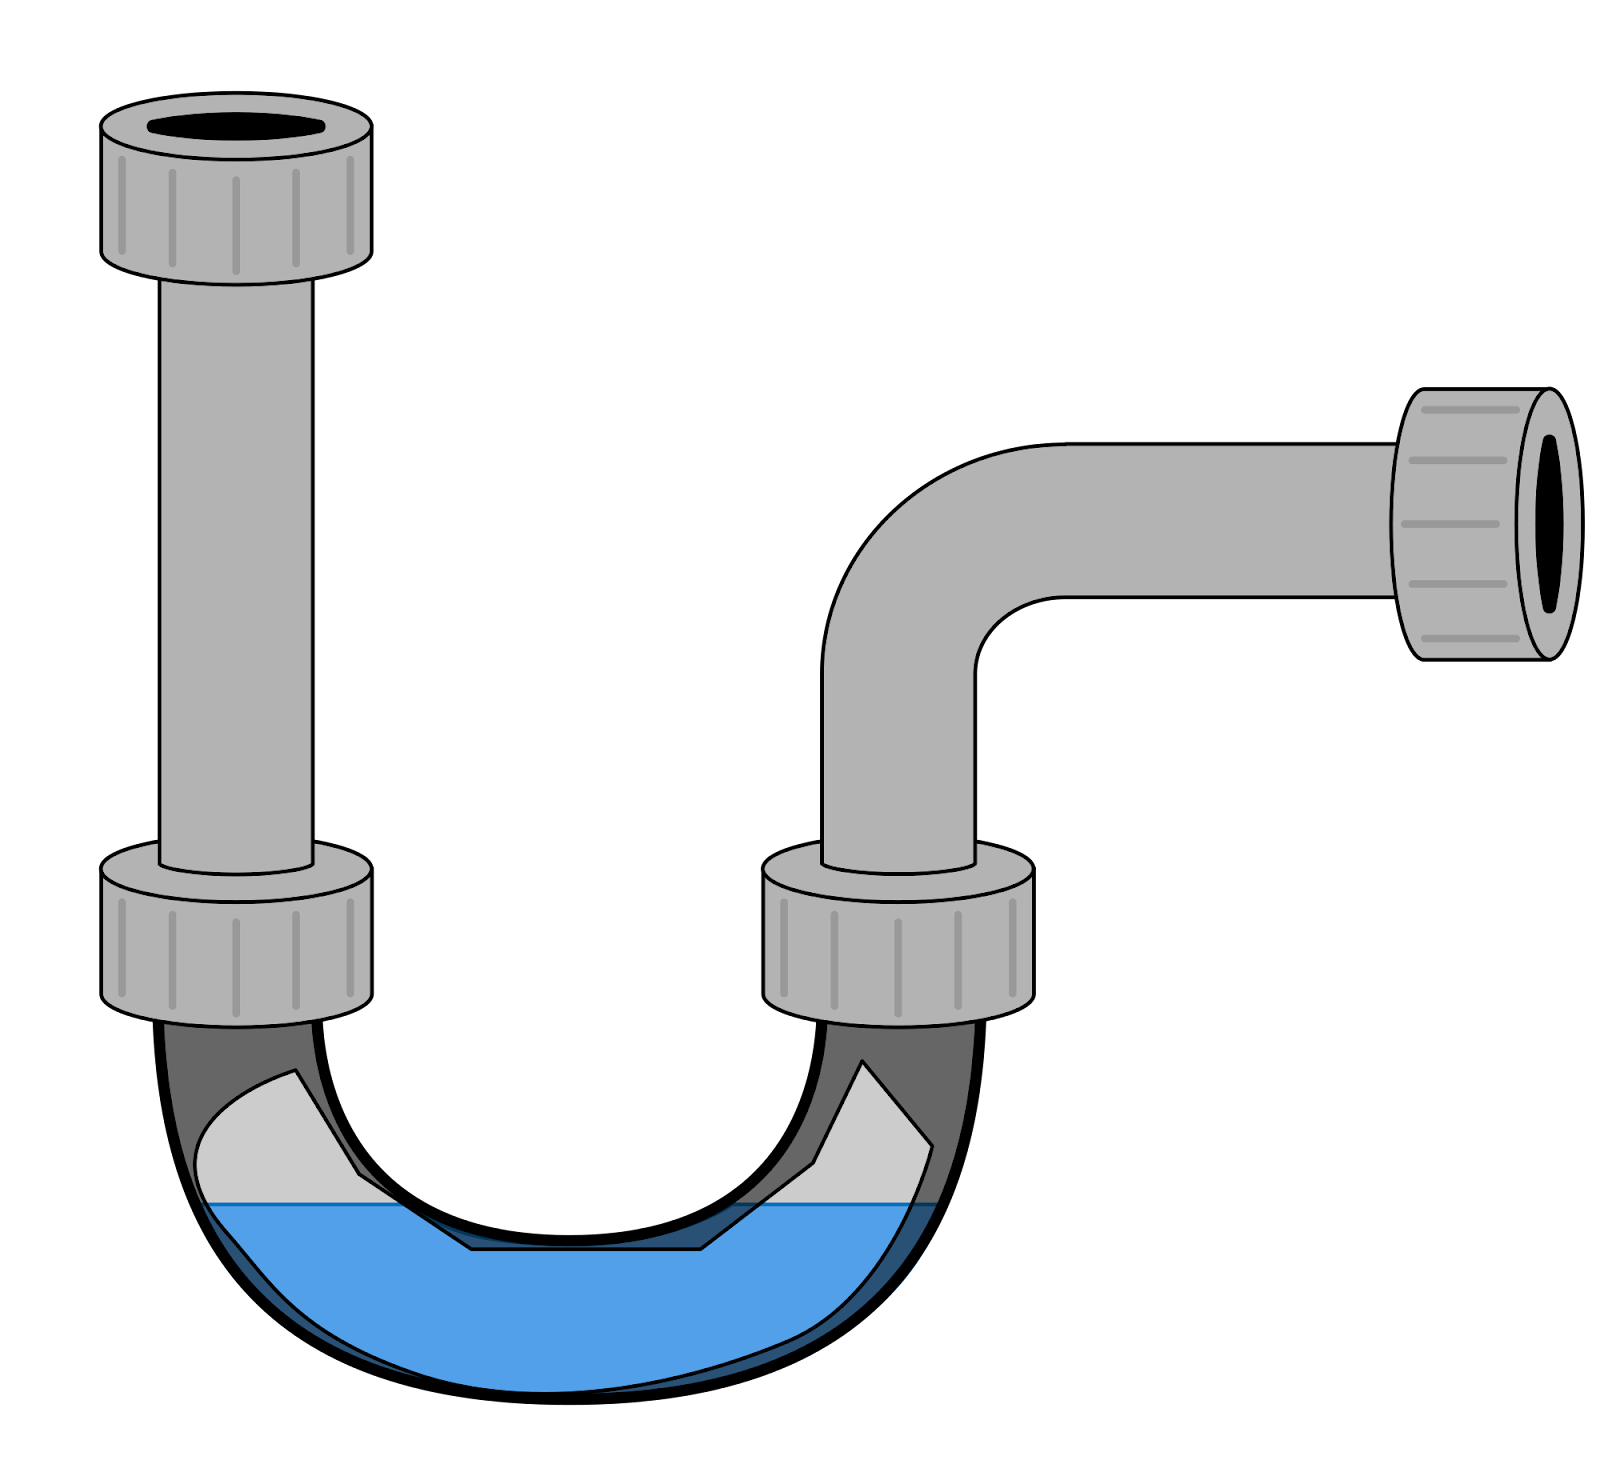 2000px-Drain_Trap.svg.png